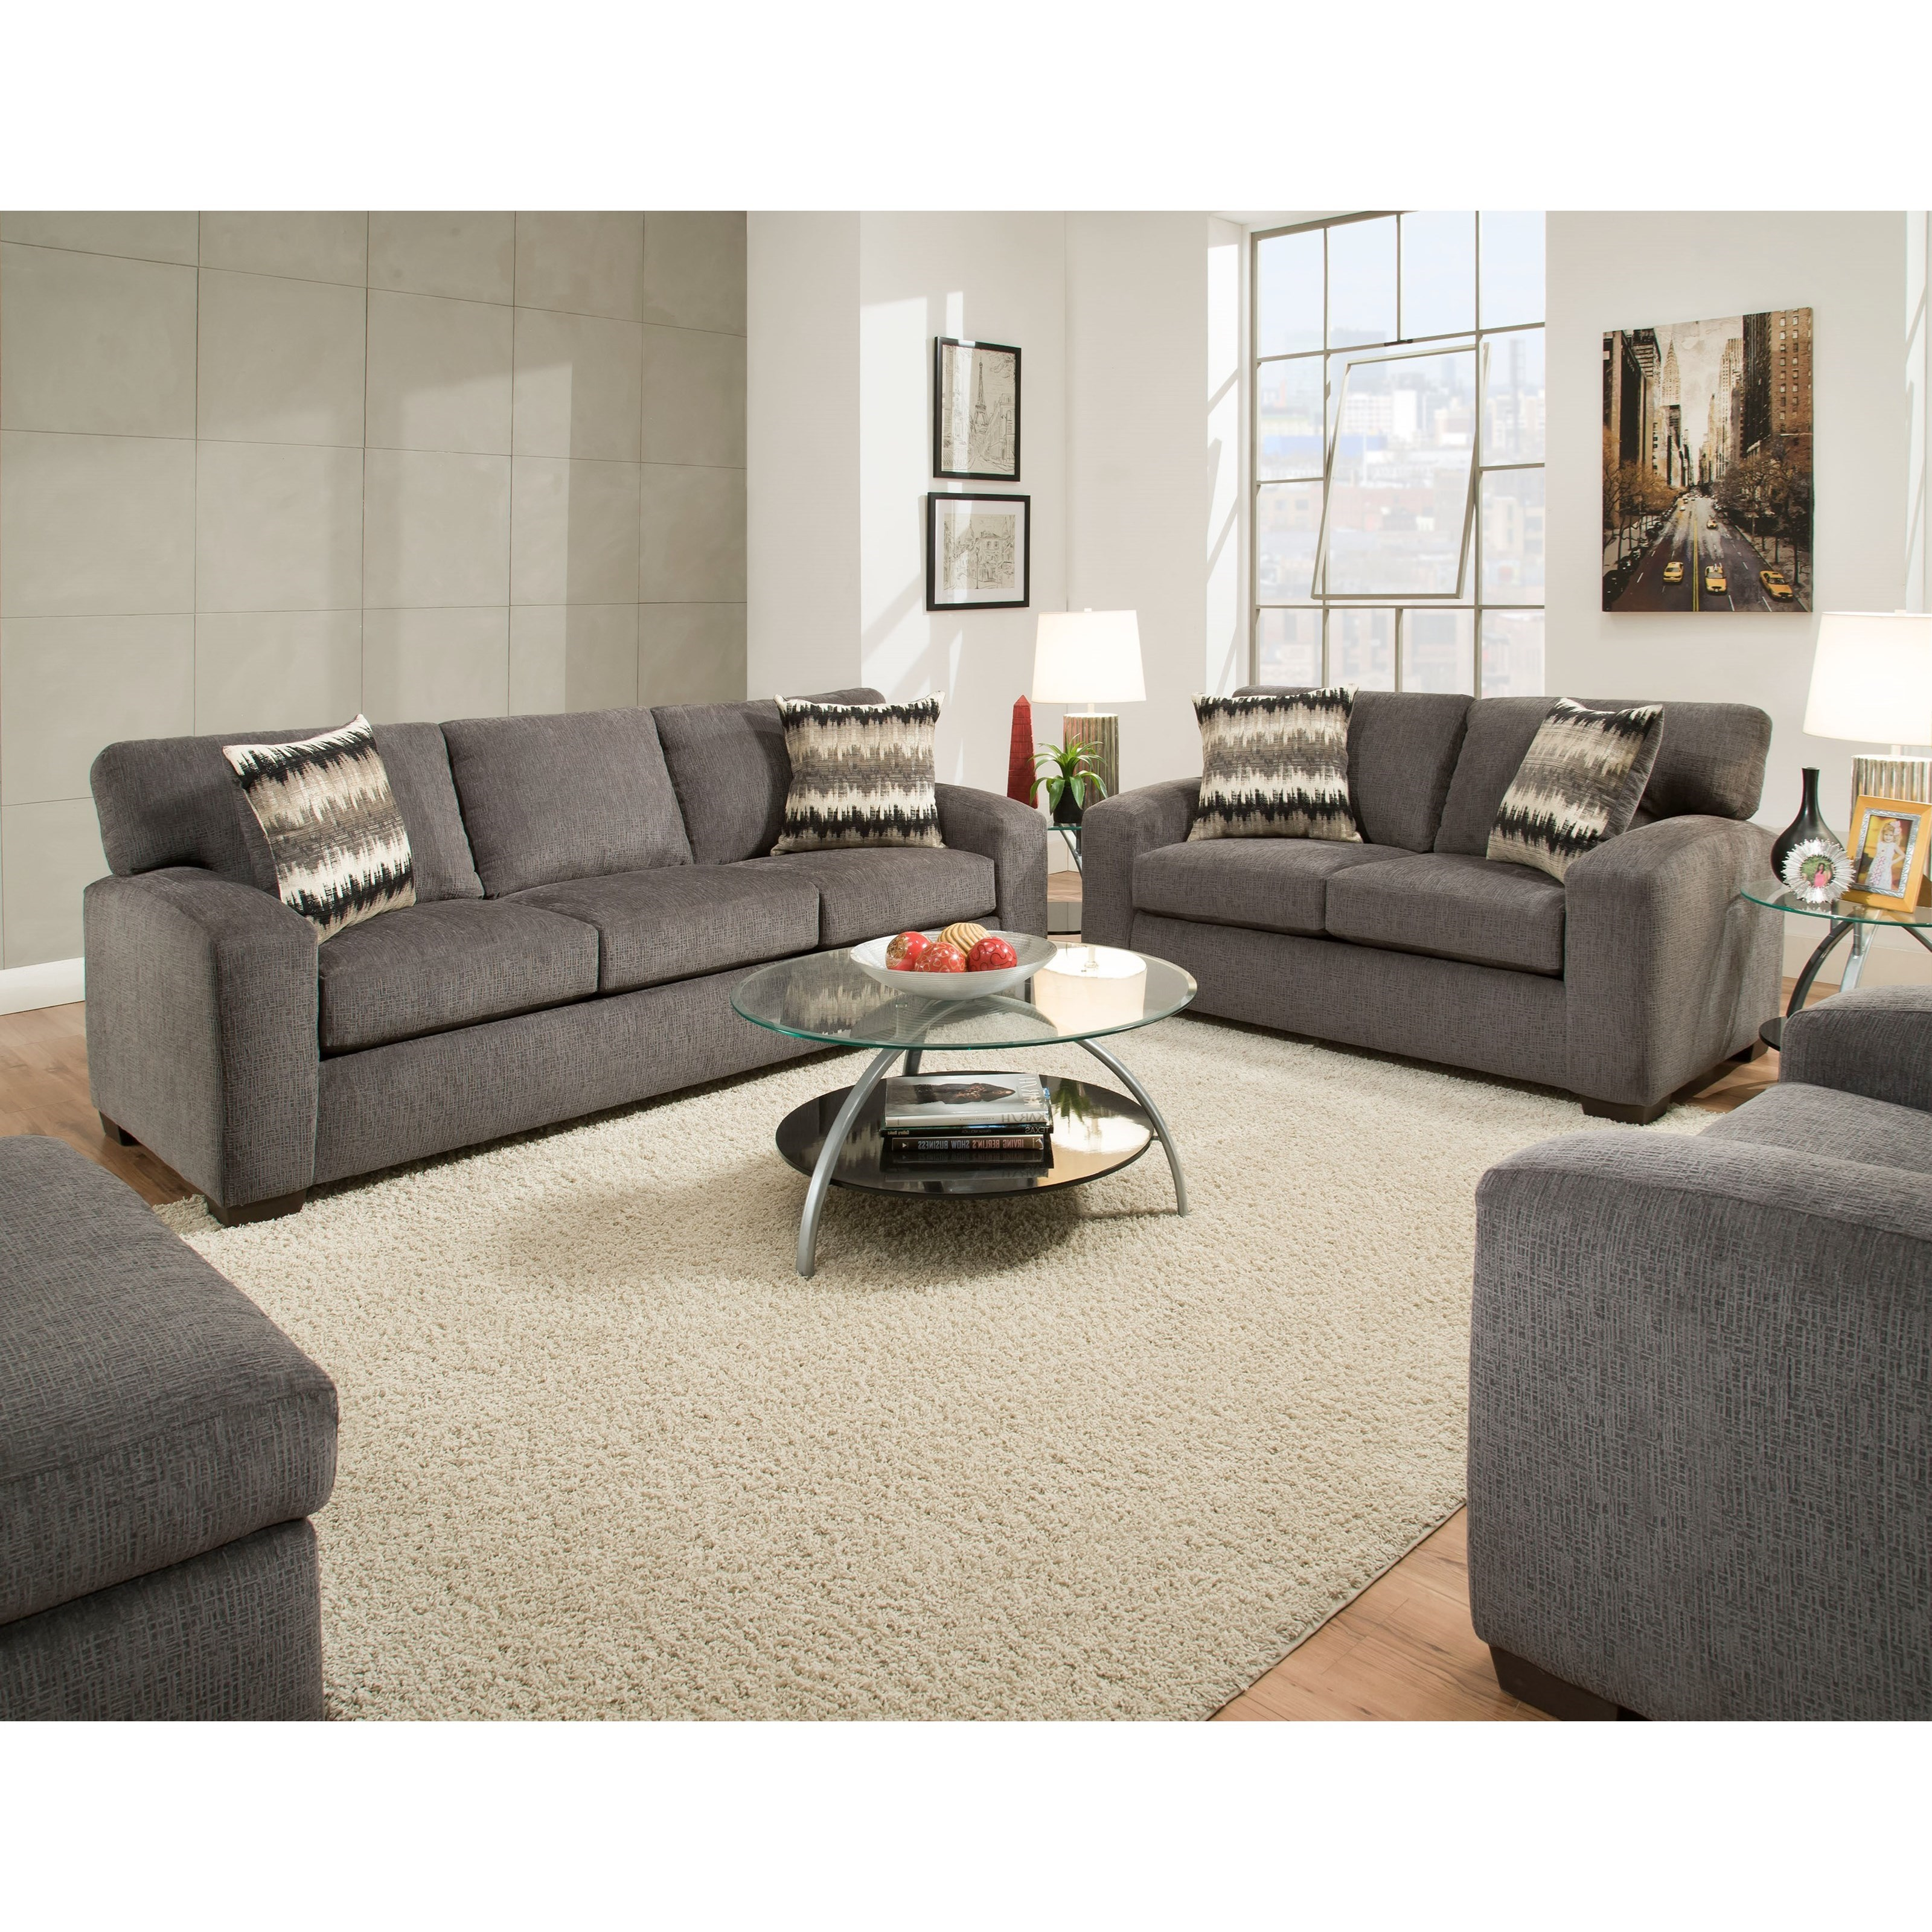 American furniture 5250 living room group vandrie home for Living room furniture groups